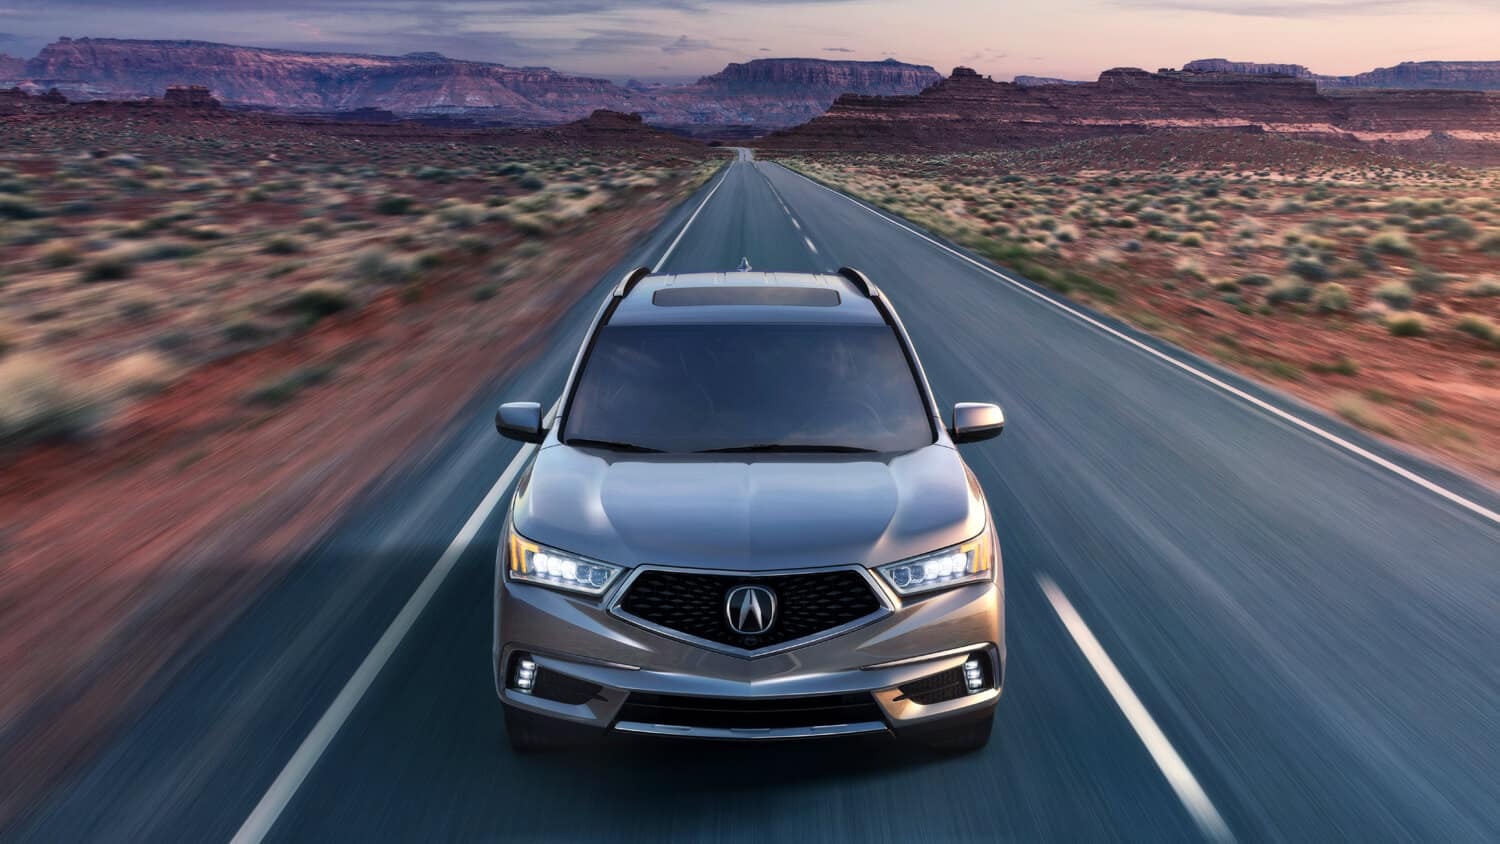 2018 Acura MDX Exterior Front Grille